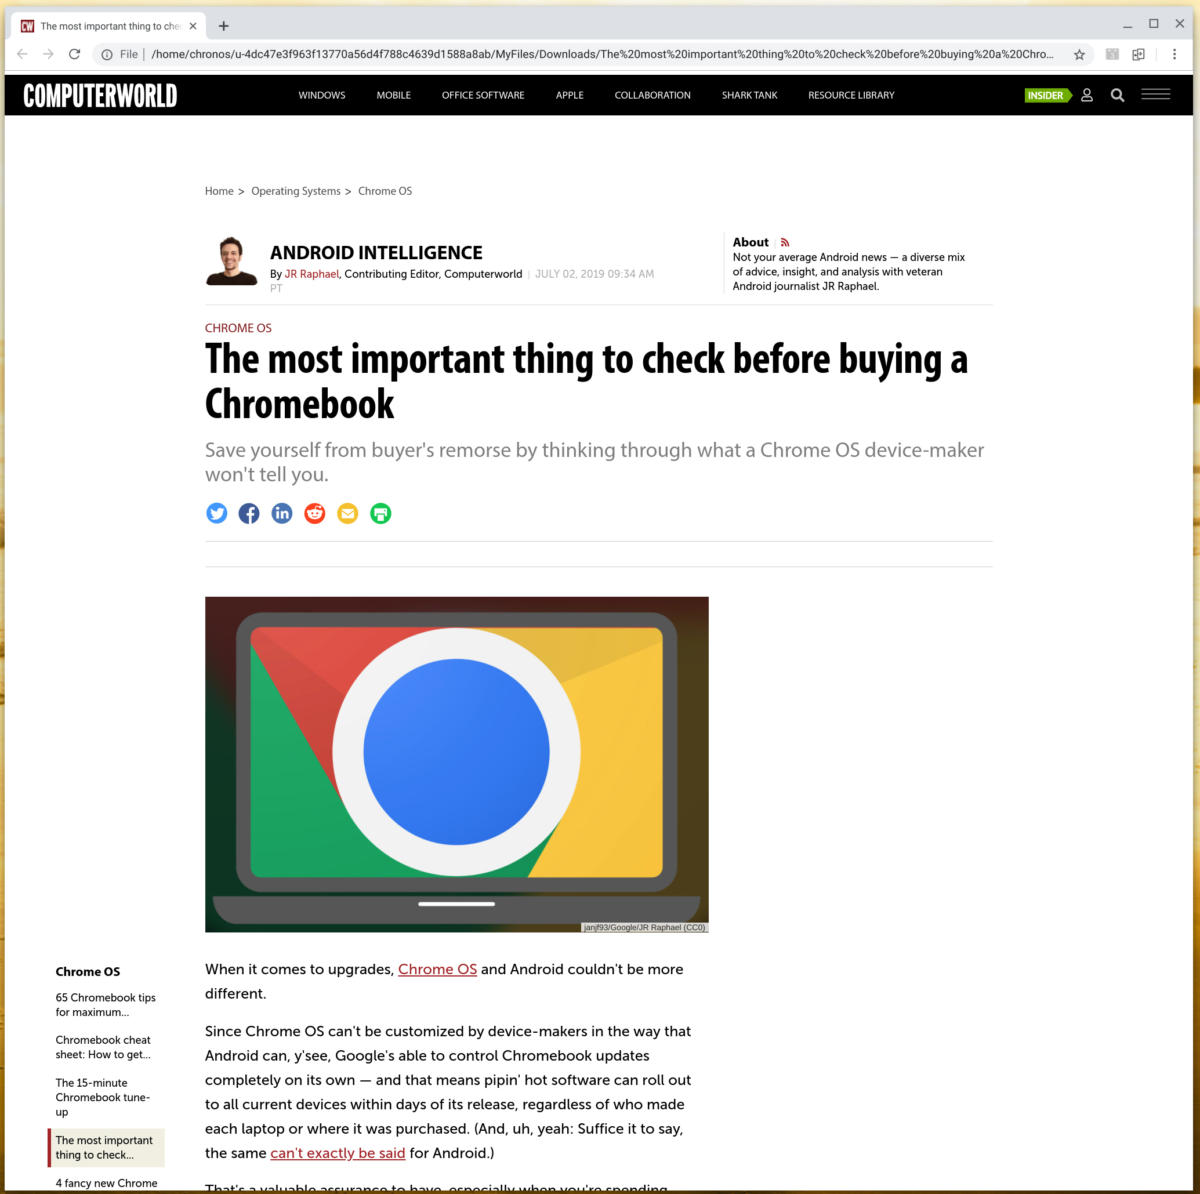 The smart worker's guide to using a Chromebook offline | Computerworld